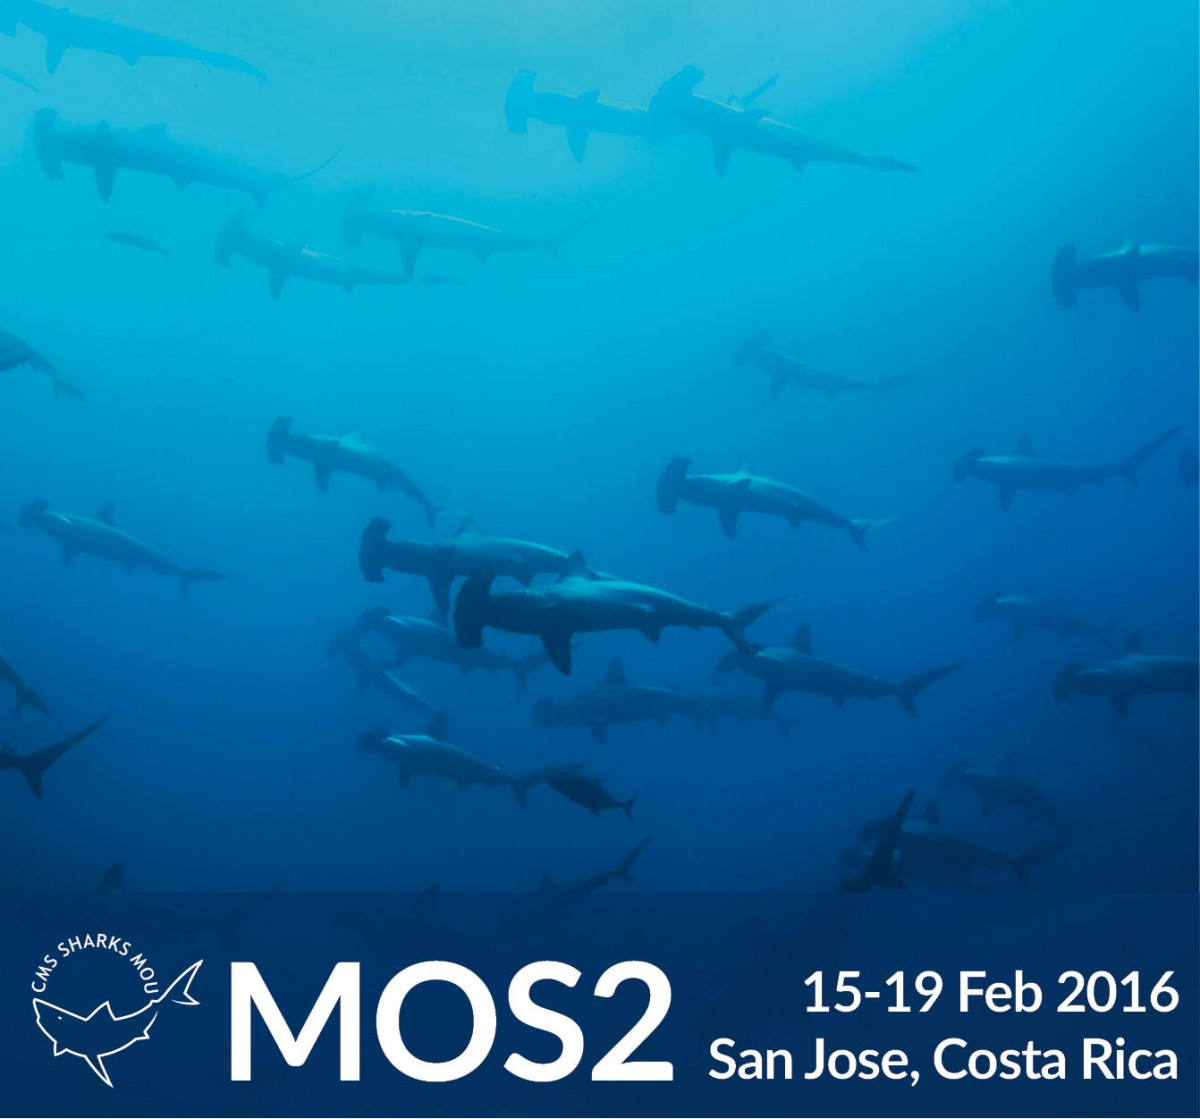 Sharks Meeting of Signatories 2 in San jose, Costa Rica 15 to 19 february 2016